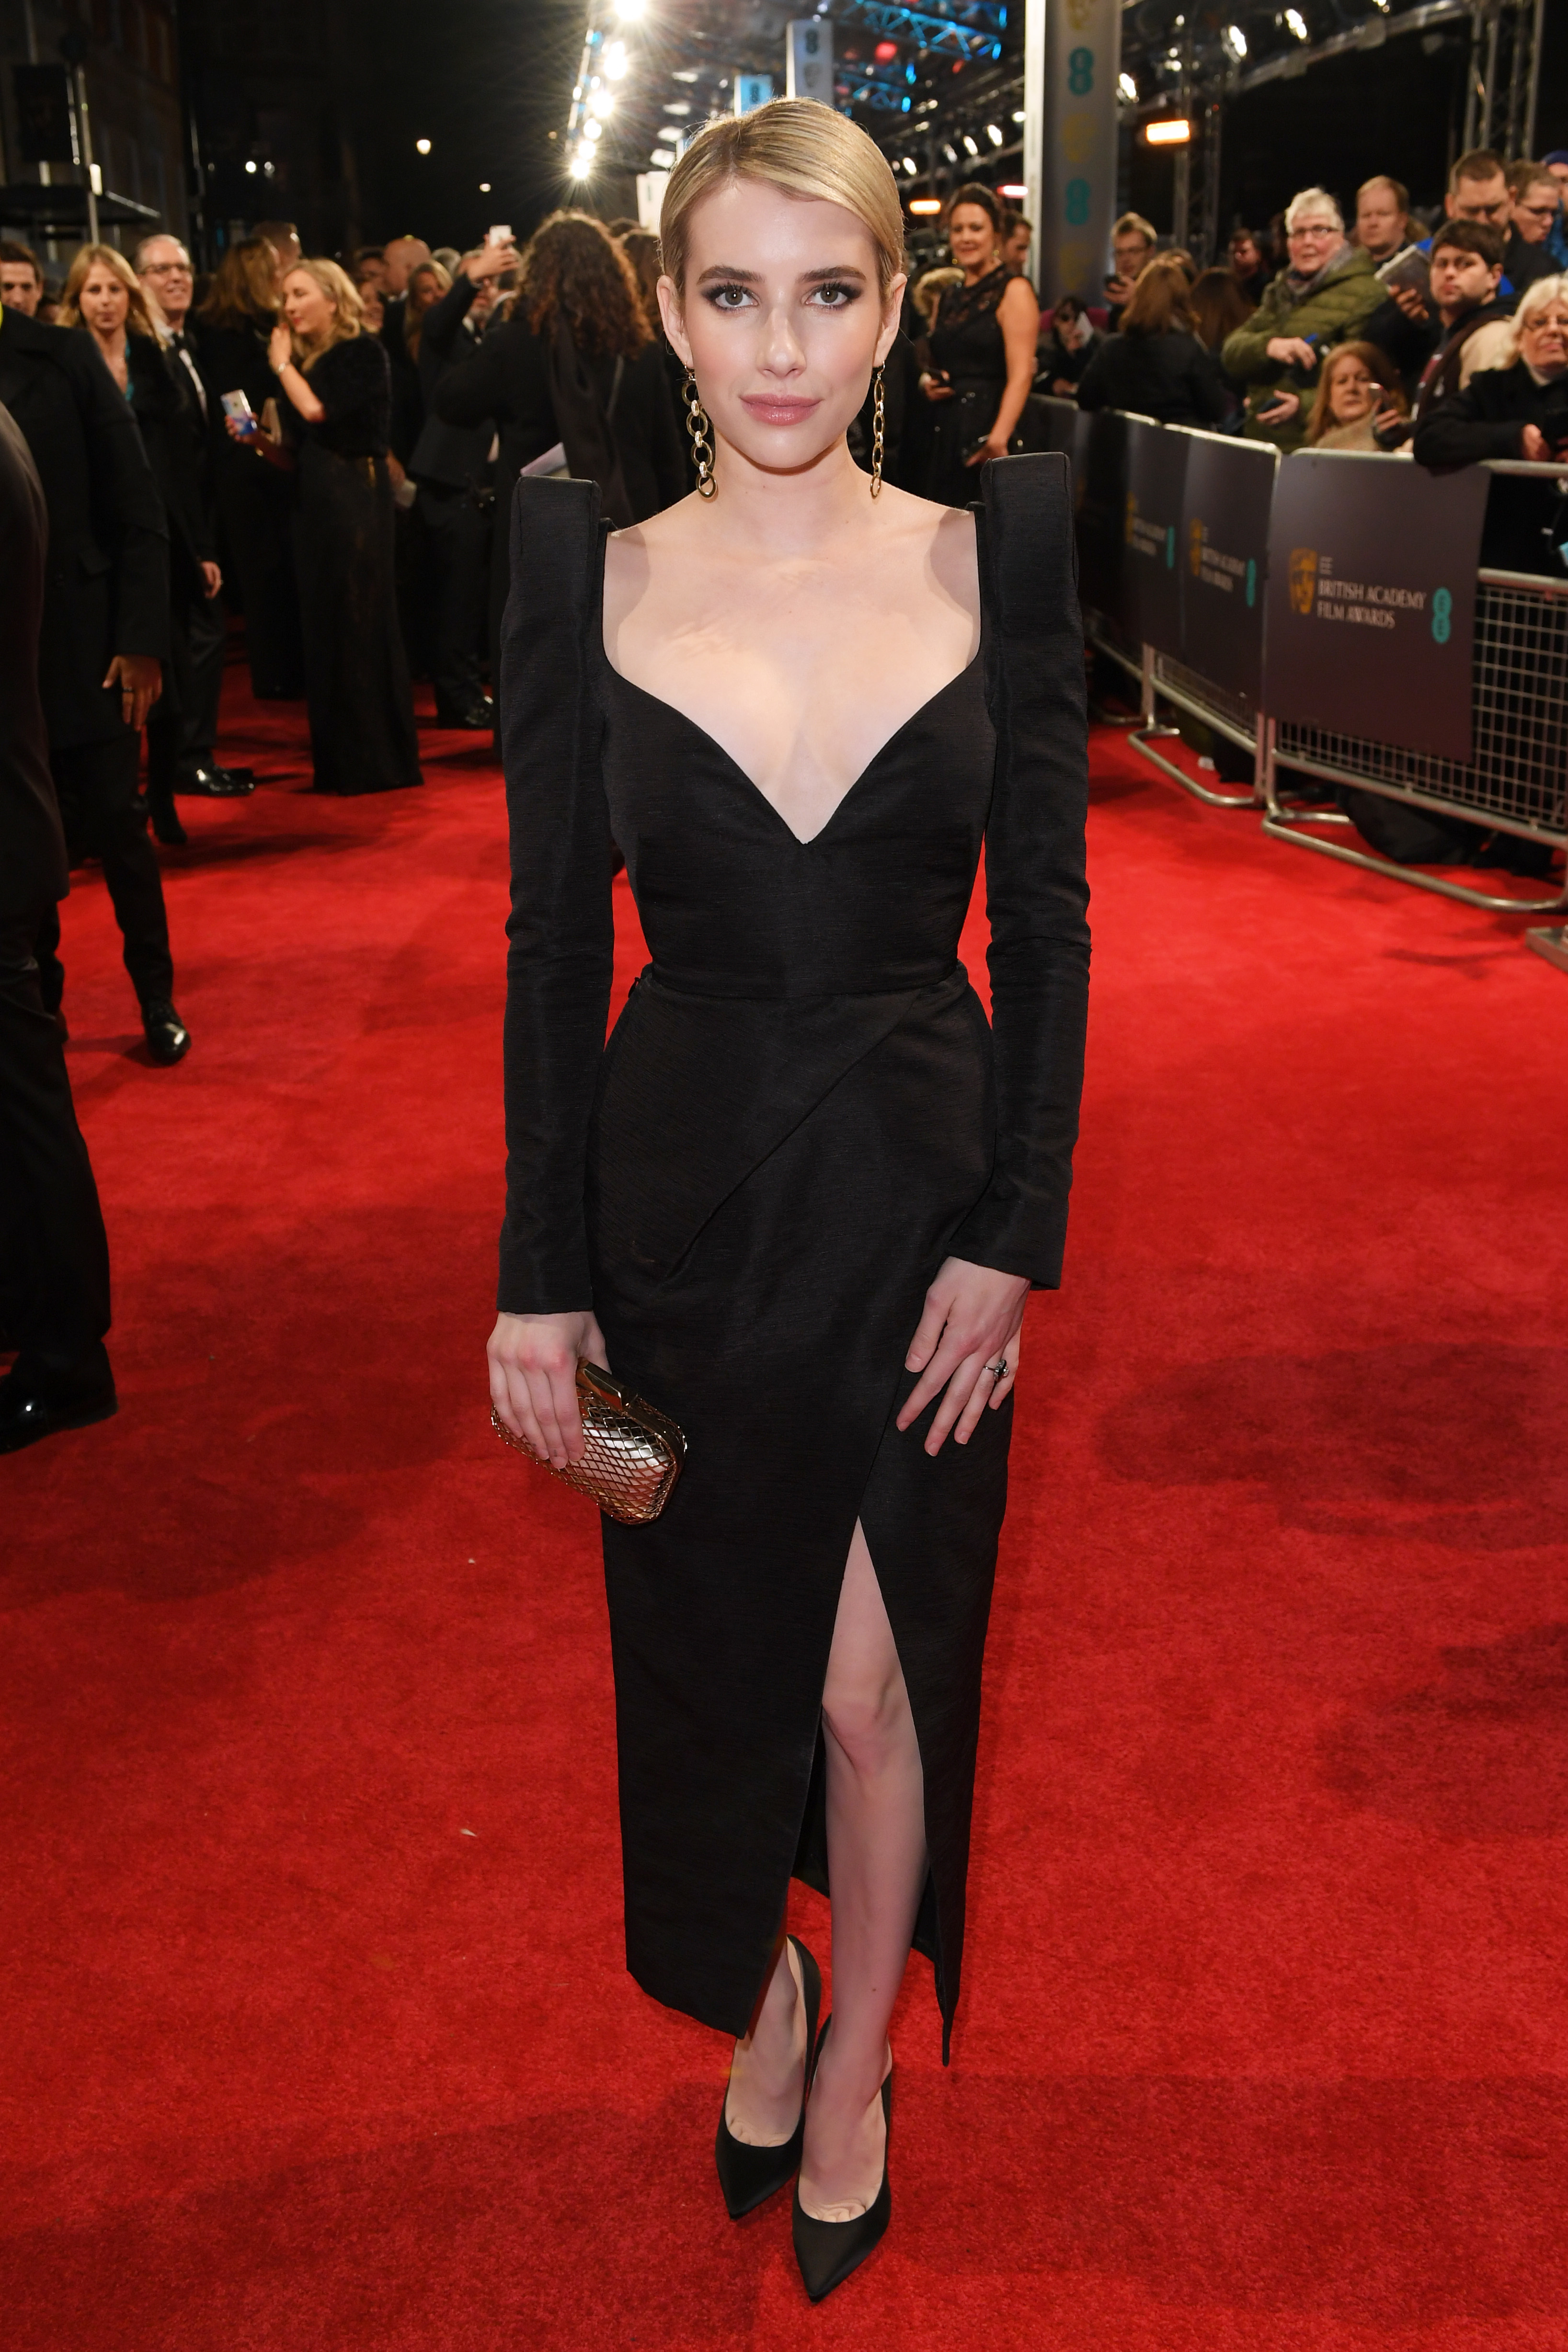 Emma Roberts arrives at the 71st EE British Academy Film Awards at the Royal Albert Hall in London on Feb. 18, 2018.